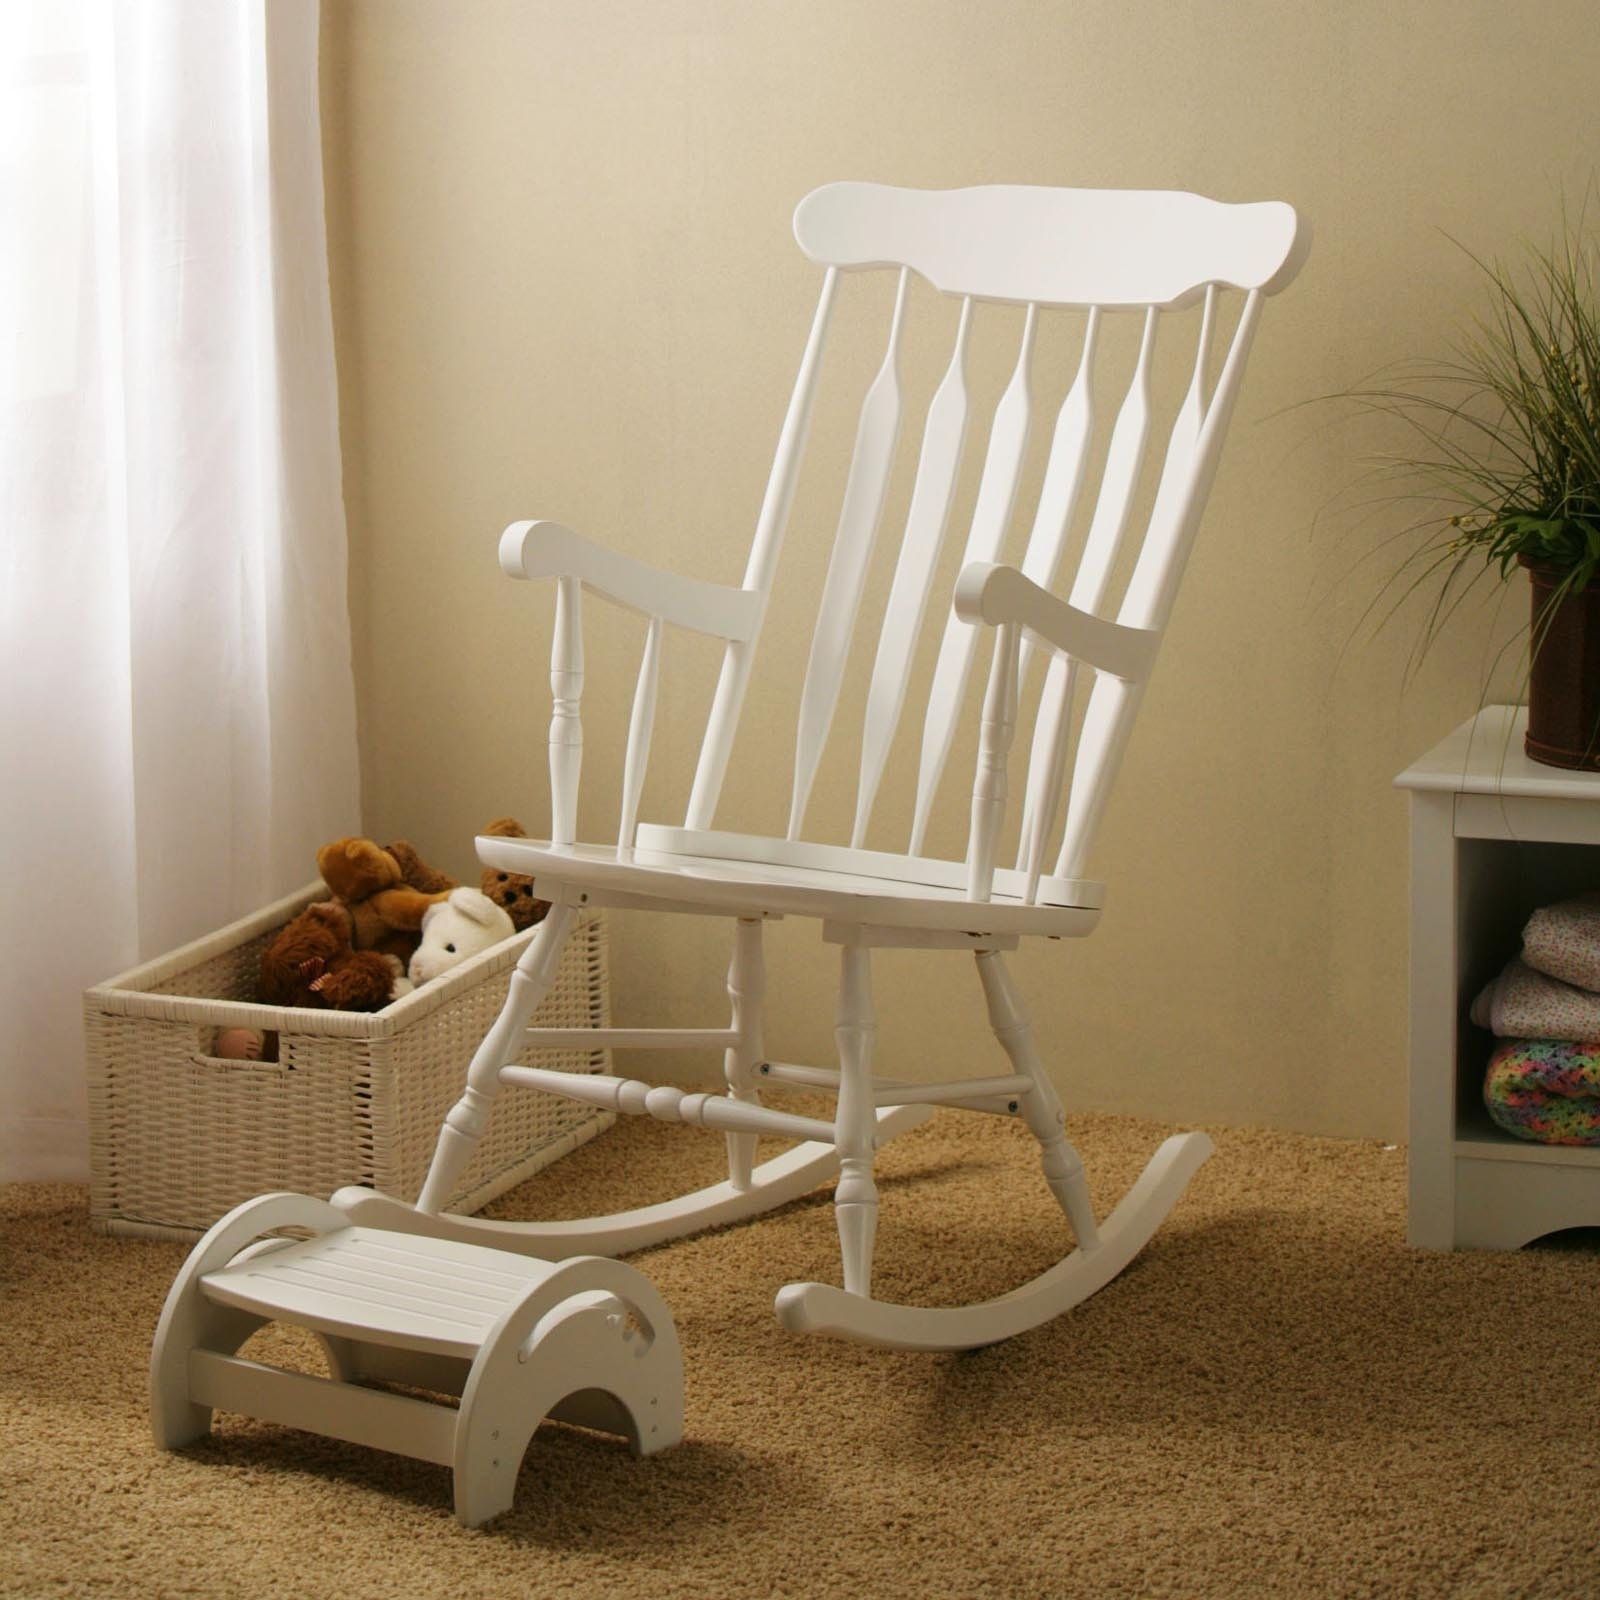 2019 Rocking Chairs For Small Spaces Inside Rocking Furniture – Kevinjohnsonformayor (View 3 of 20)